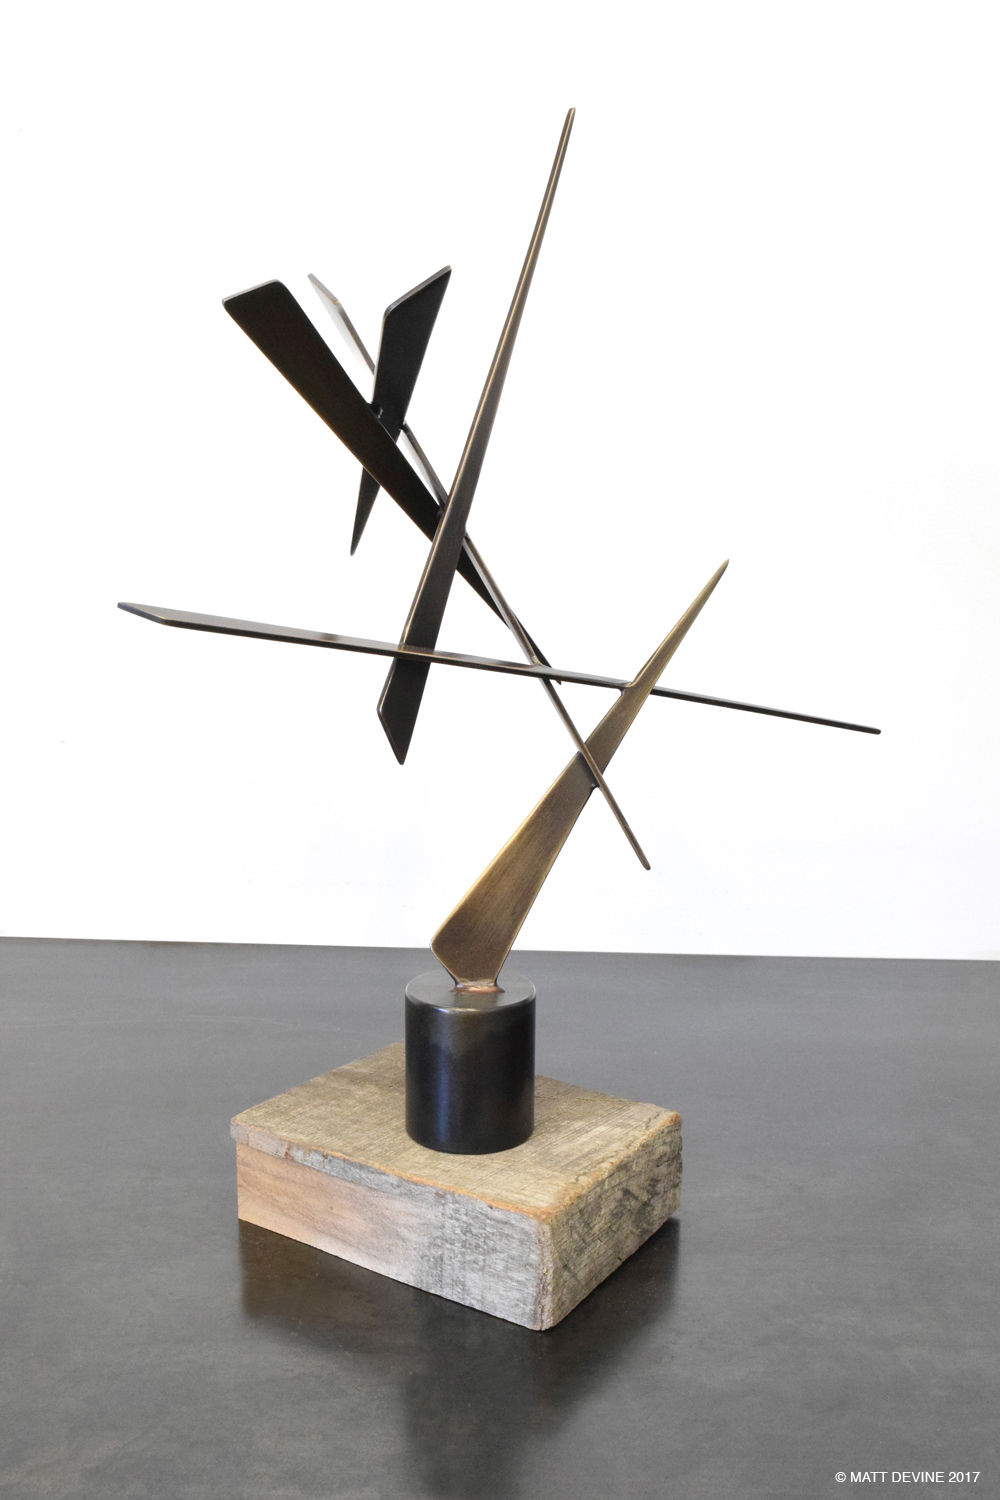 EDWARD #9, 2015, bronze with steel and wood base, 16H x 13W x 6D